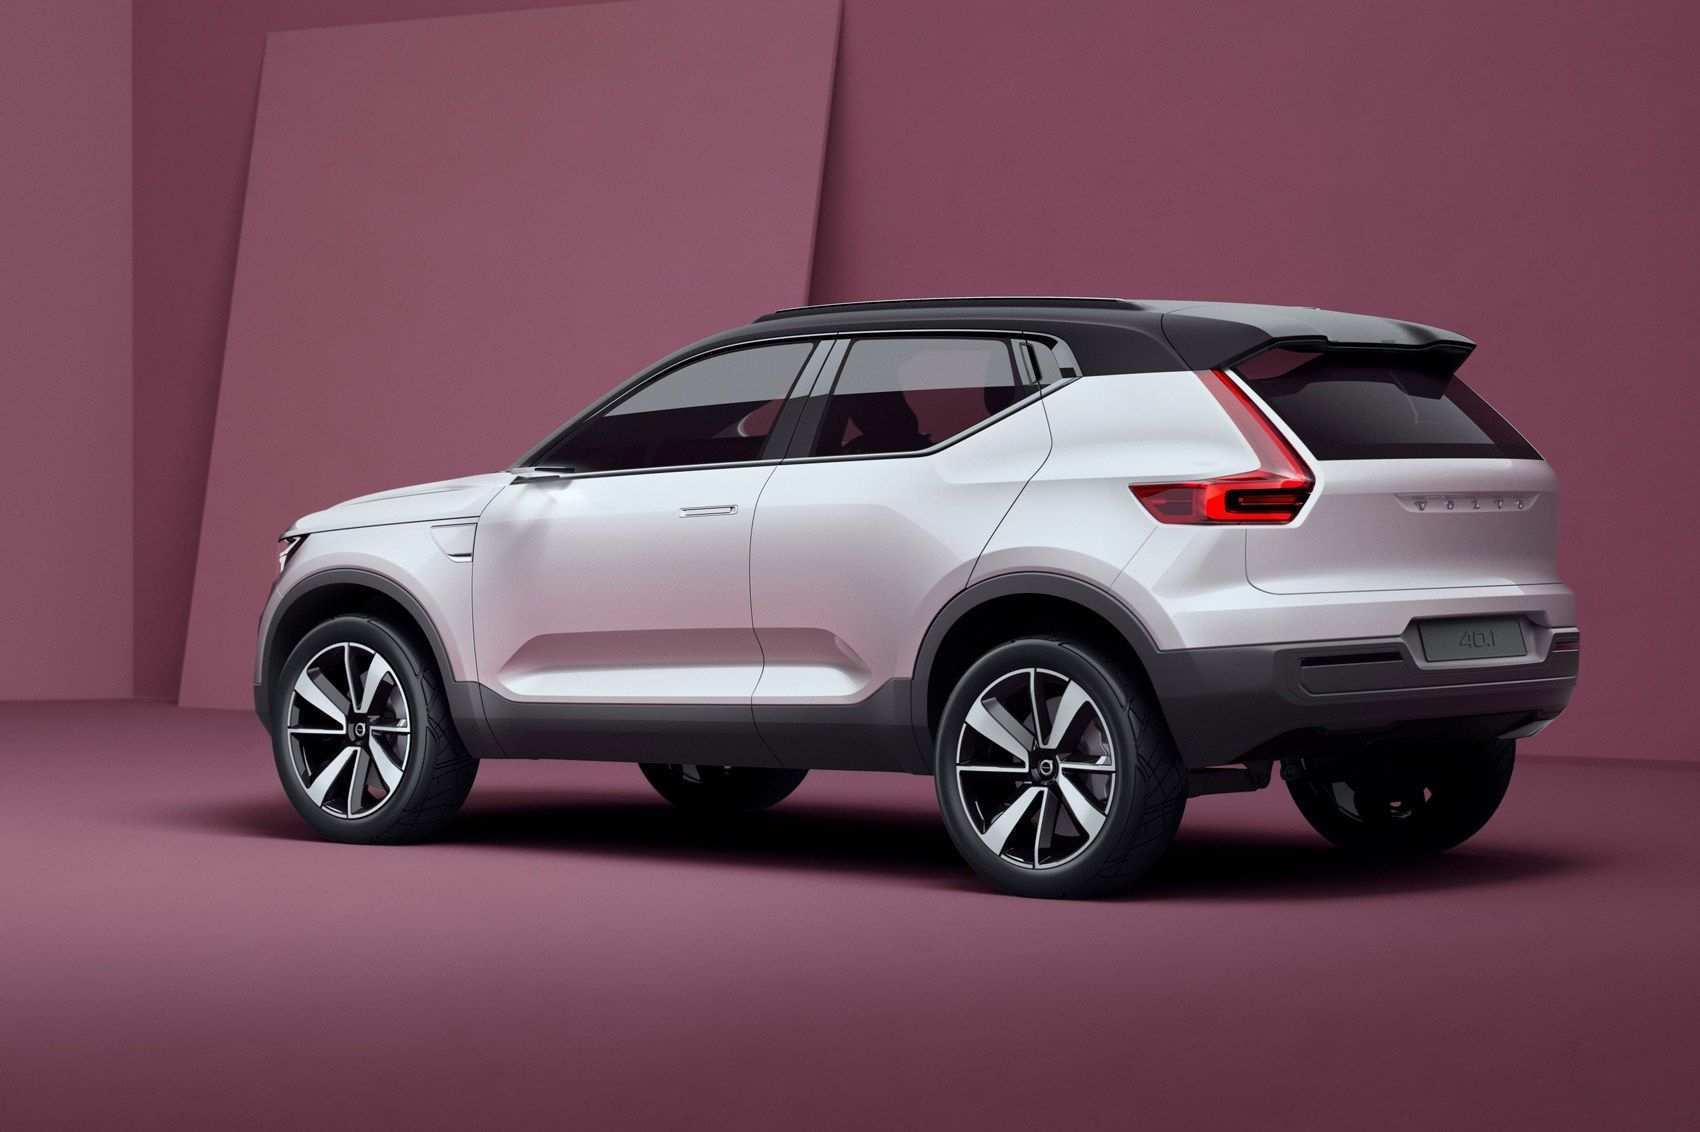 57 The Volvo Xc40 2020 New Concept History for Volvo Xc40 2020 New Concept